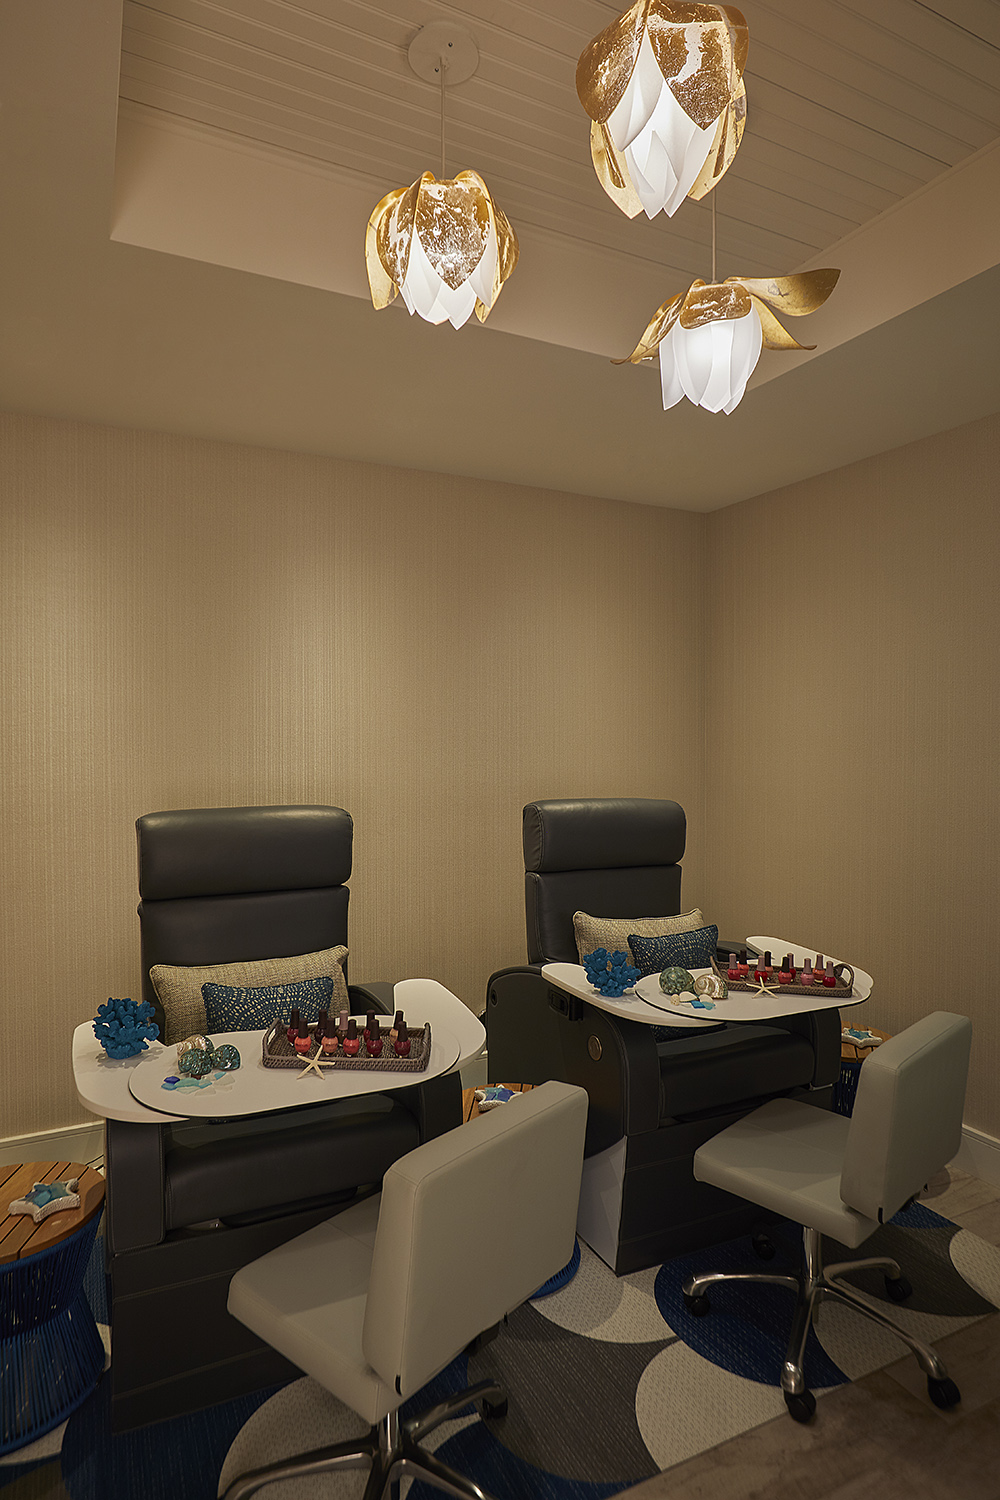 The Back to School and Teacher Appreciation specials include a Summer Citrus Manicure and Pedicure.